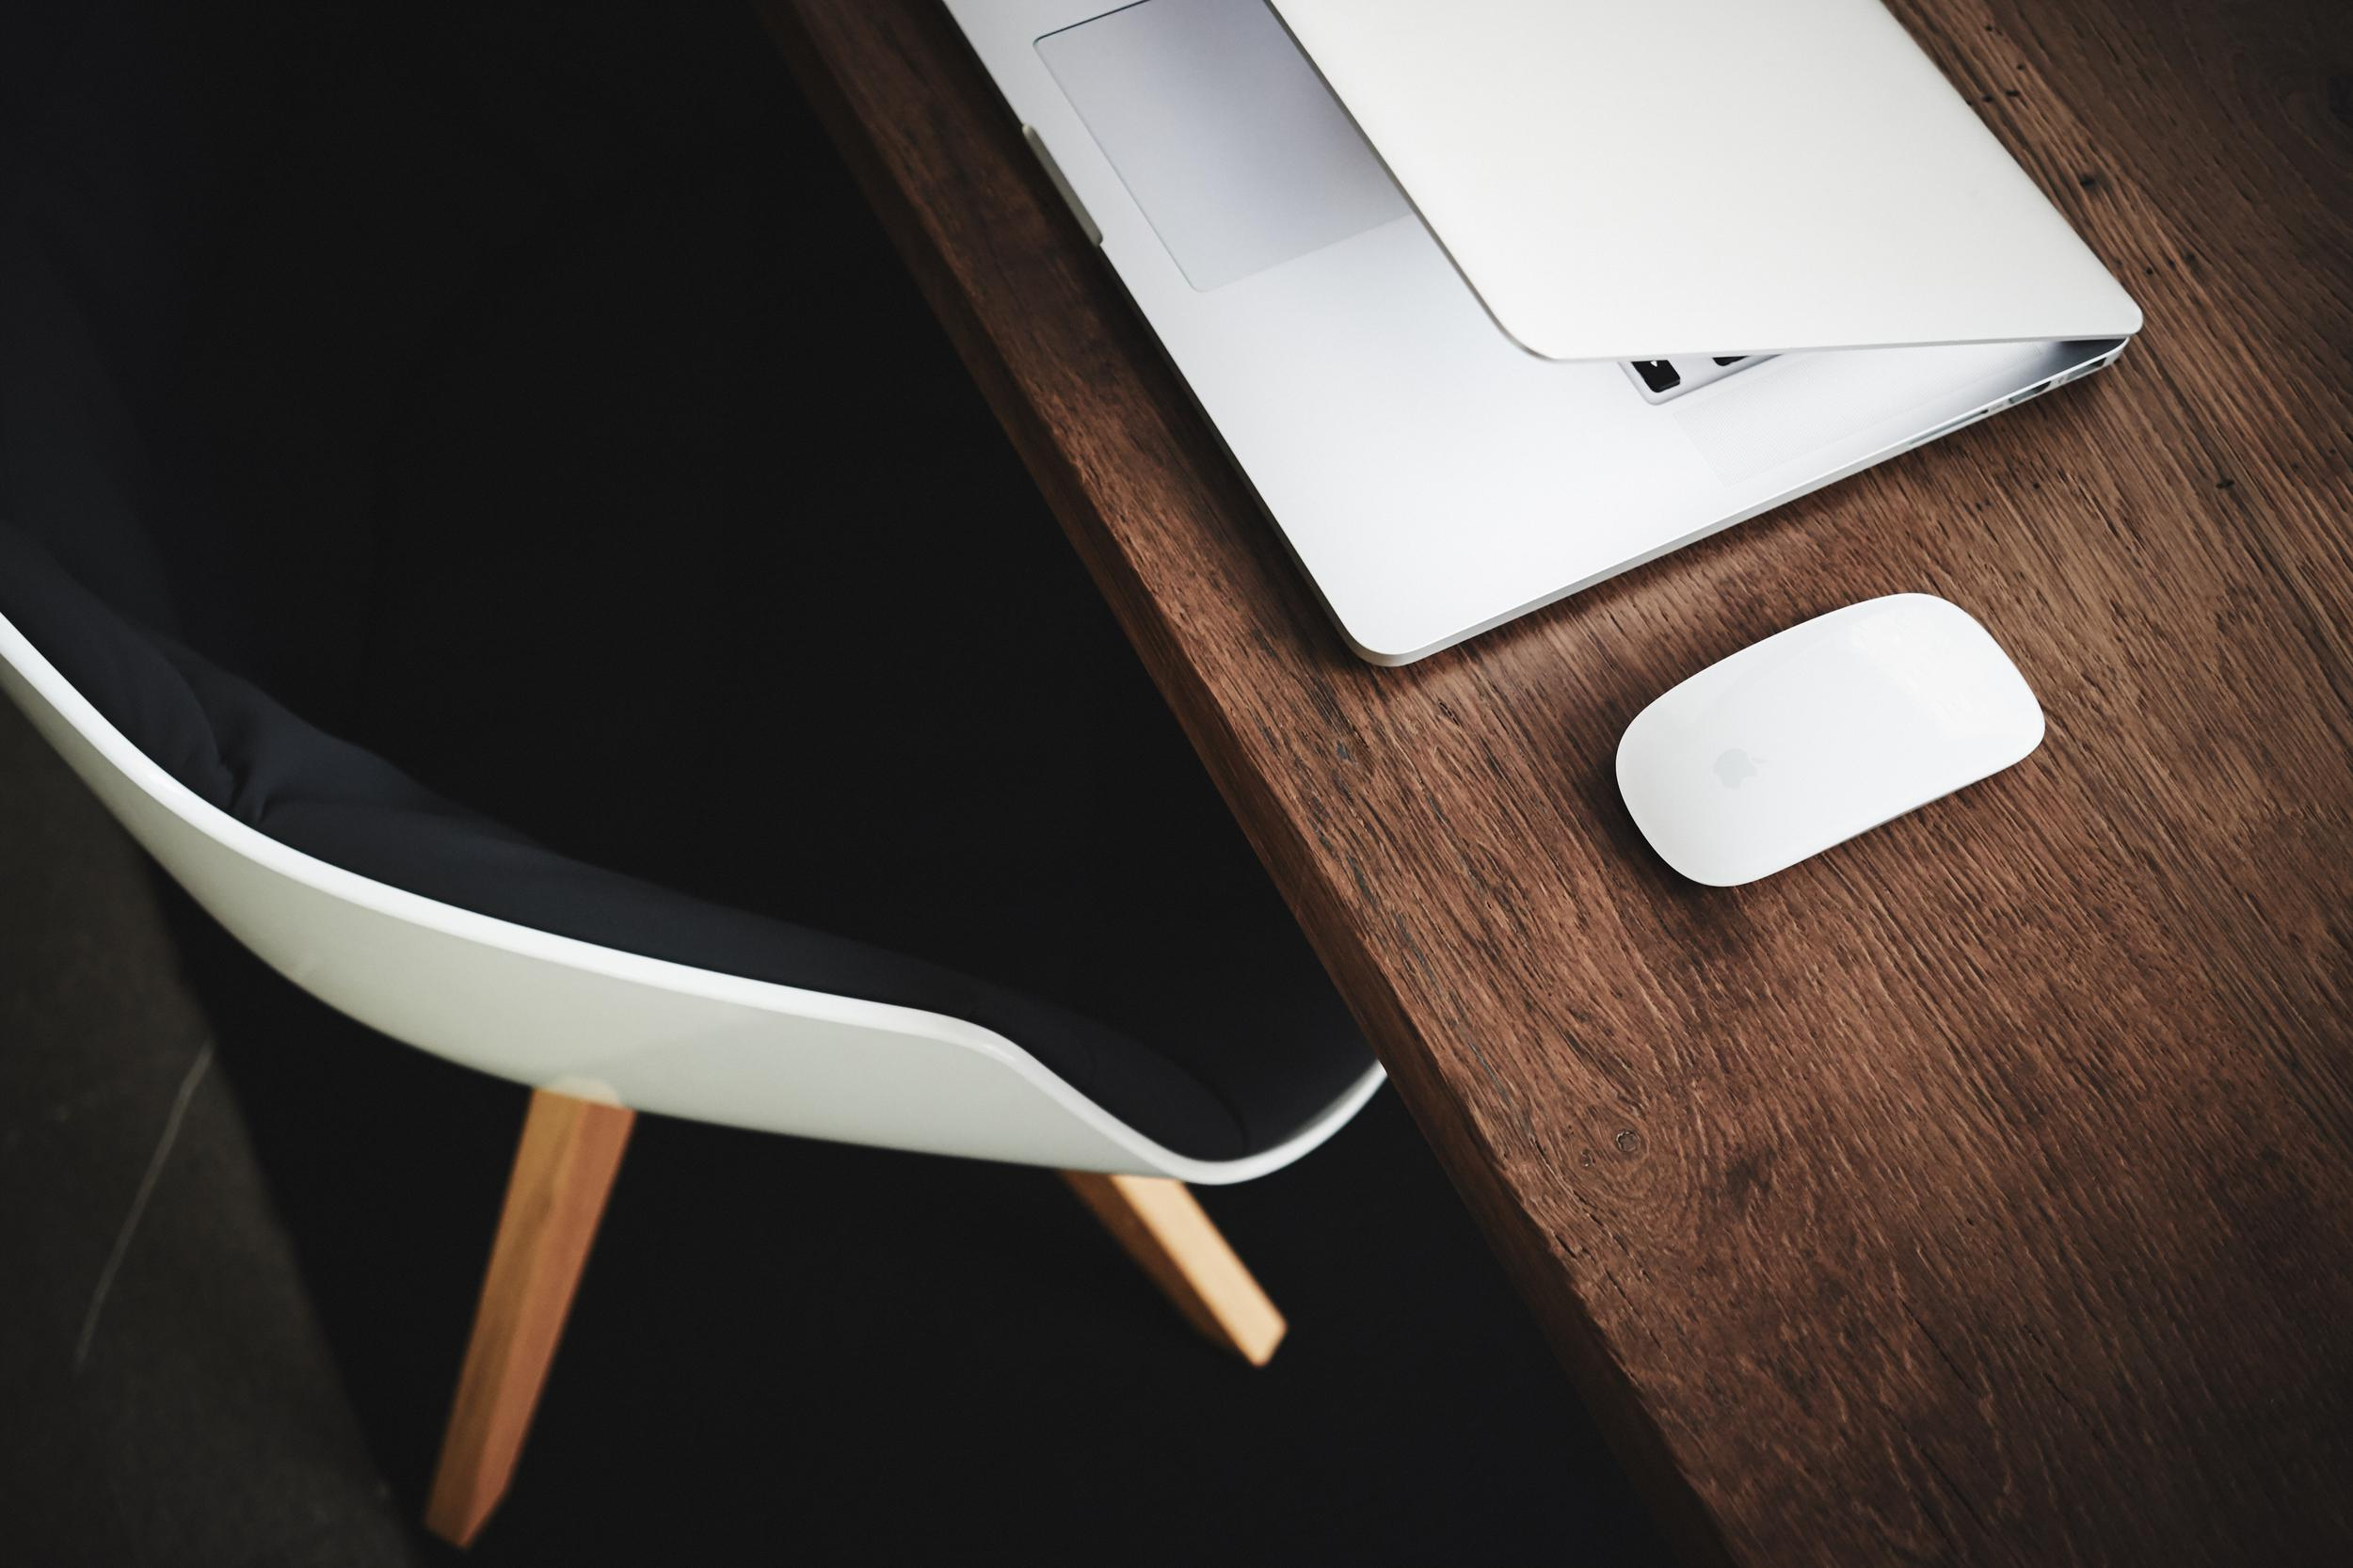 laptop and mouse sitting on a brown wooden desk